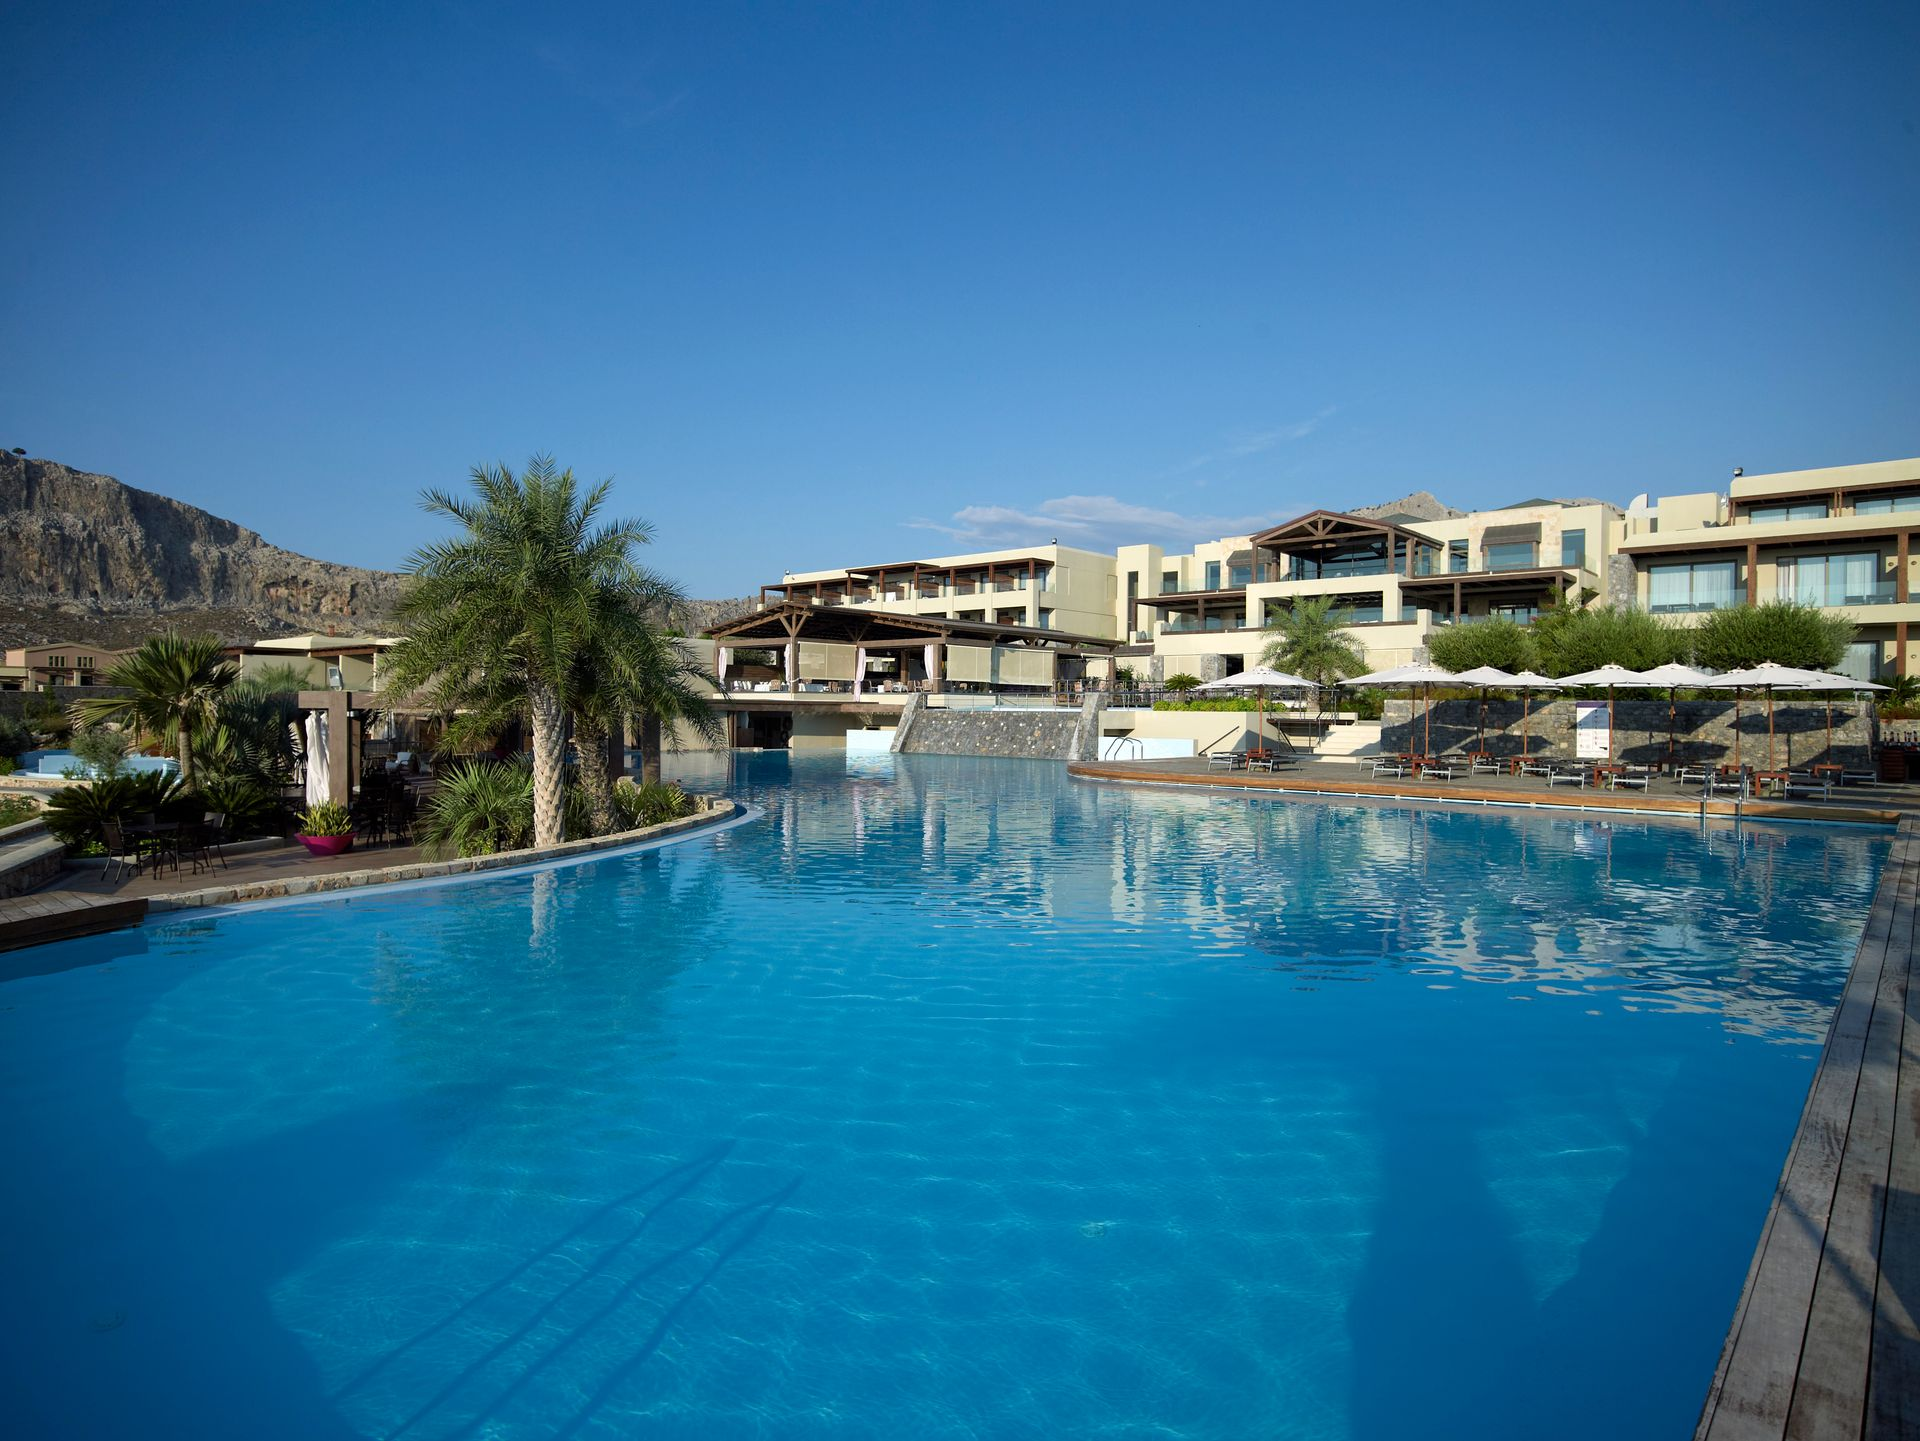 5* Aquagrand Exclusive Deluxe Resort - Ρόδος ✦ 2 Ημέρες